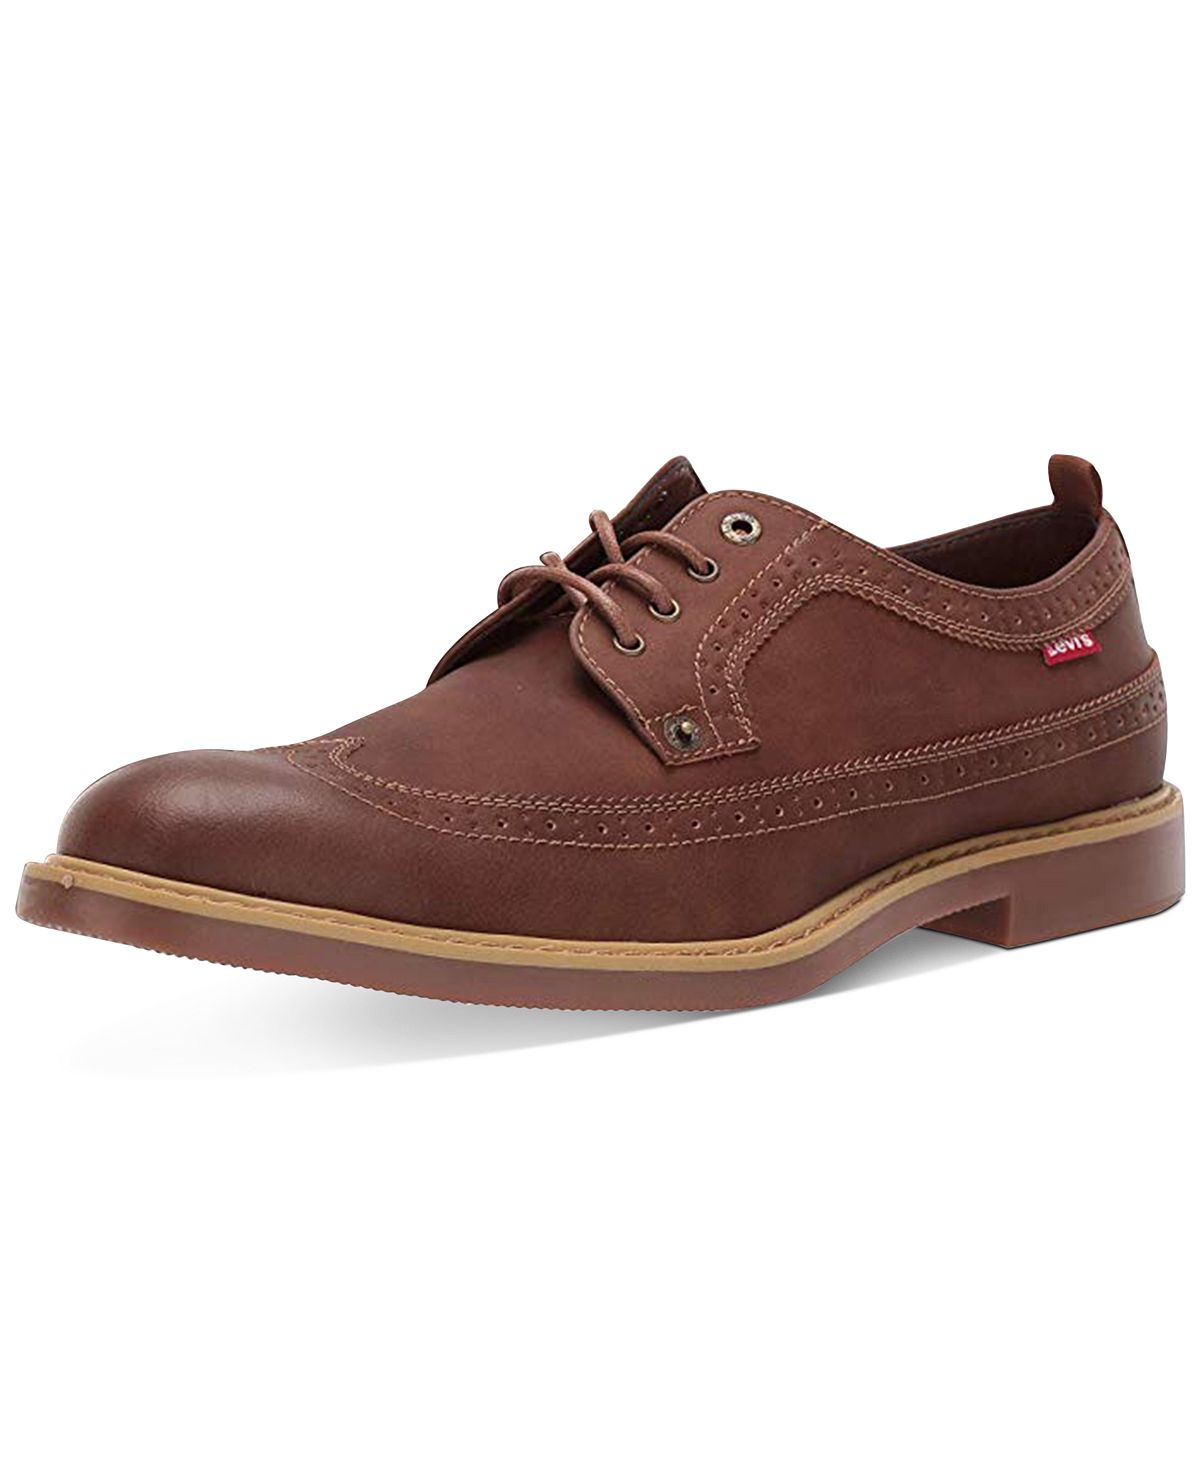 Levi's Tindal Ul Wingtip Oxfords Dark Tan